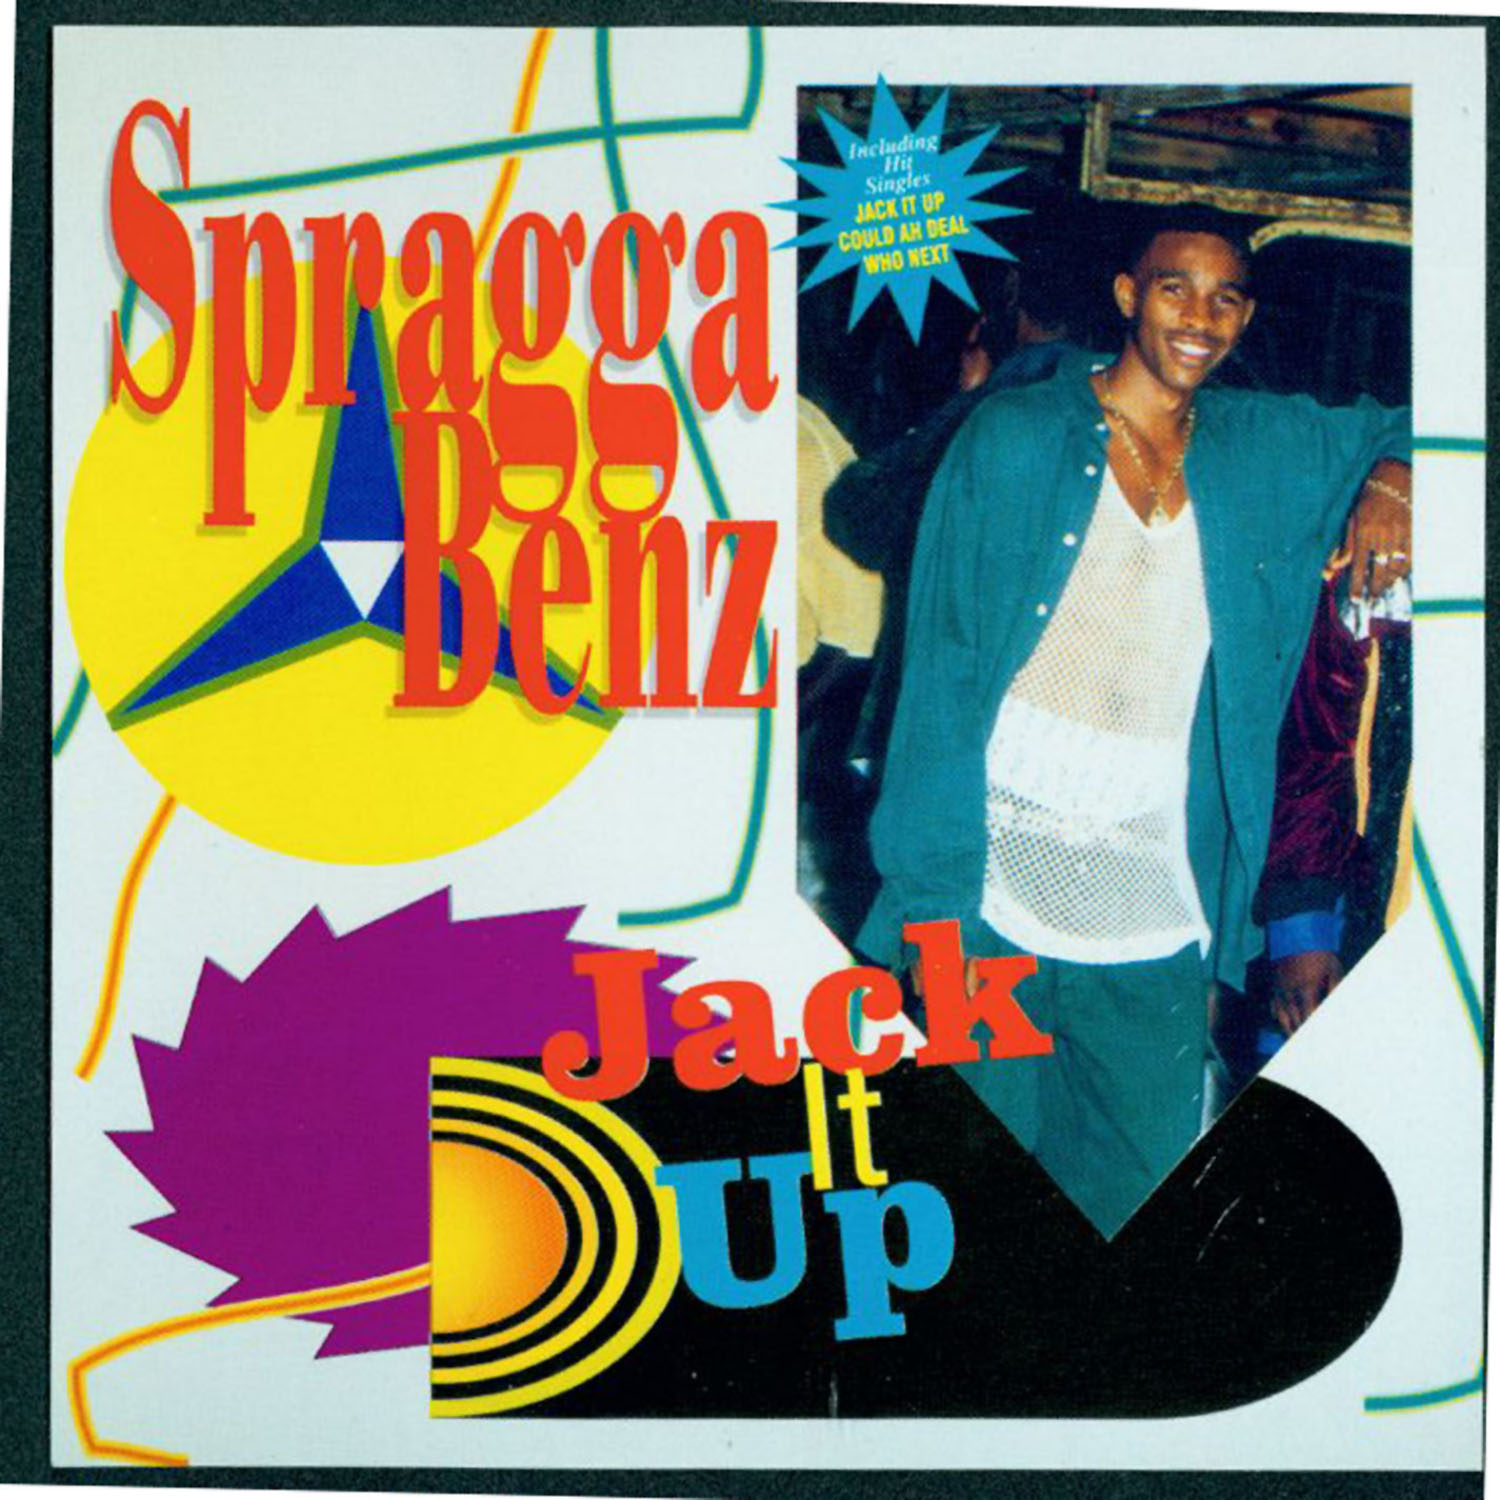 Spragga Benz – Jack It Up